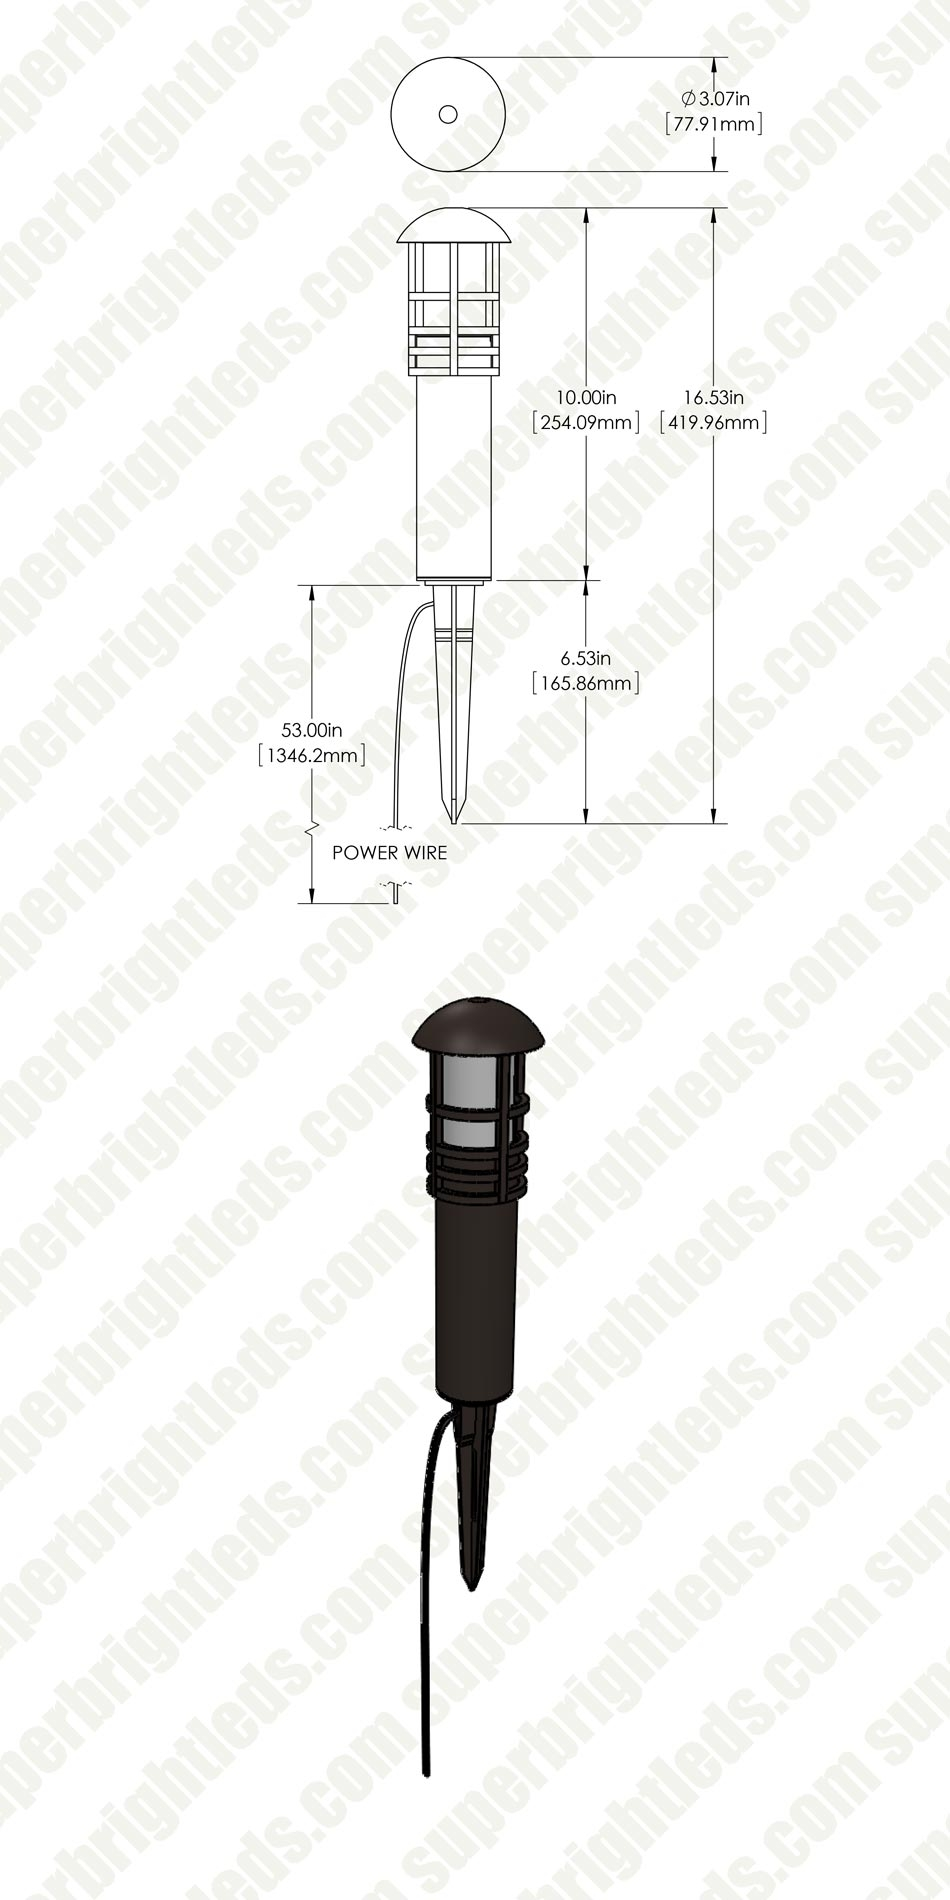 LED Pathway Light - 3W - Low Voltage Landscape Lighting - Mini Bollard Post - 15W Equivalent